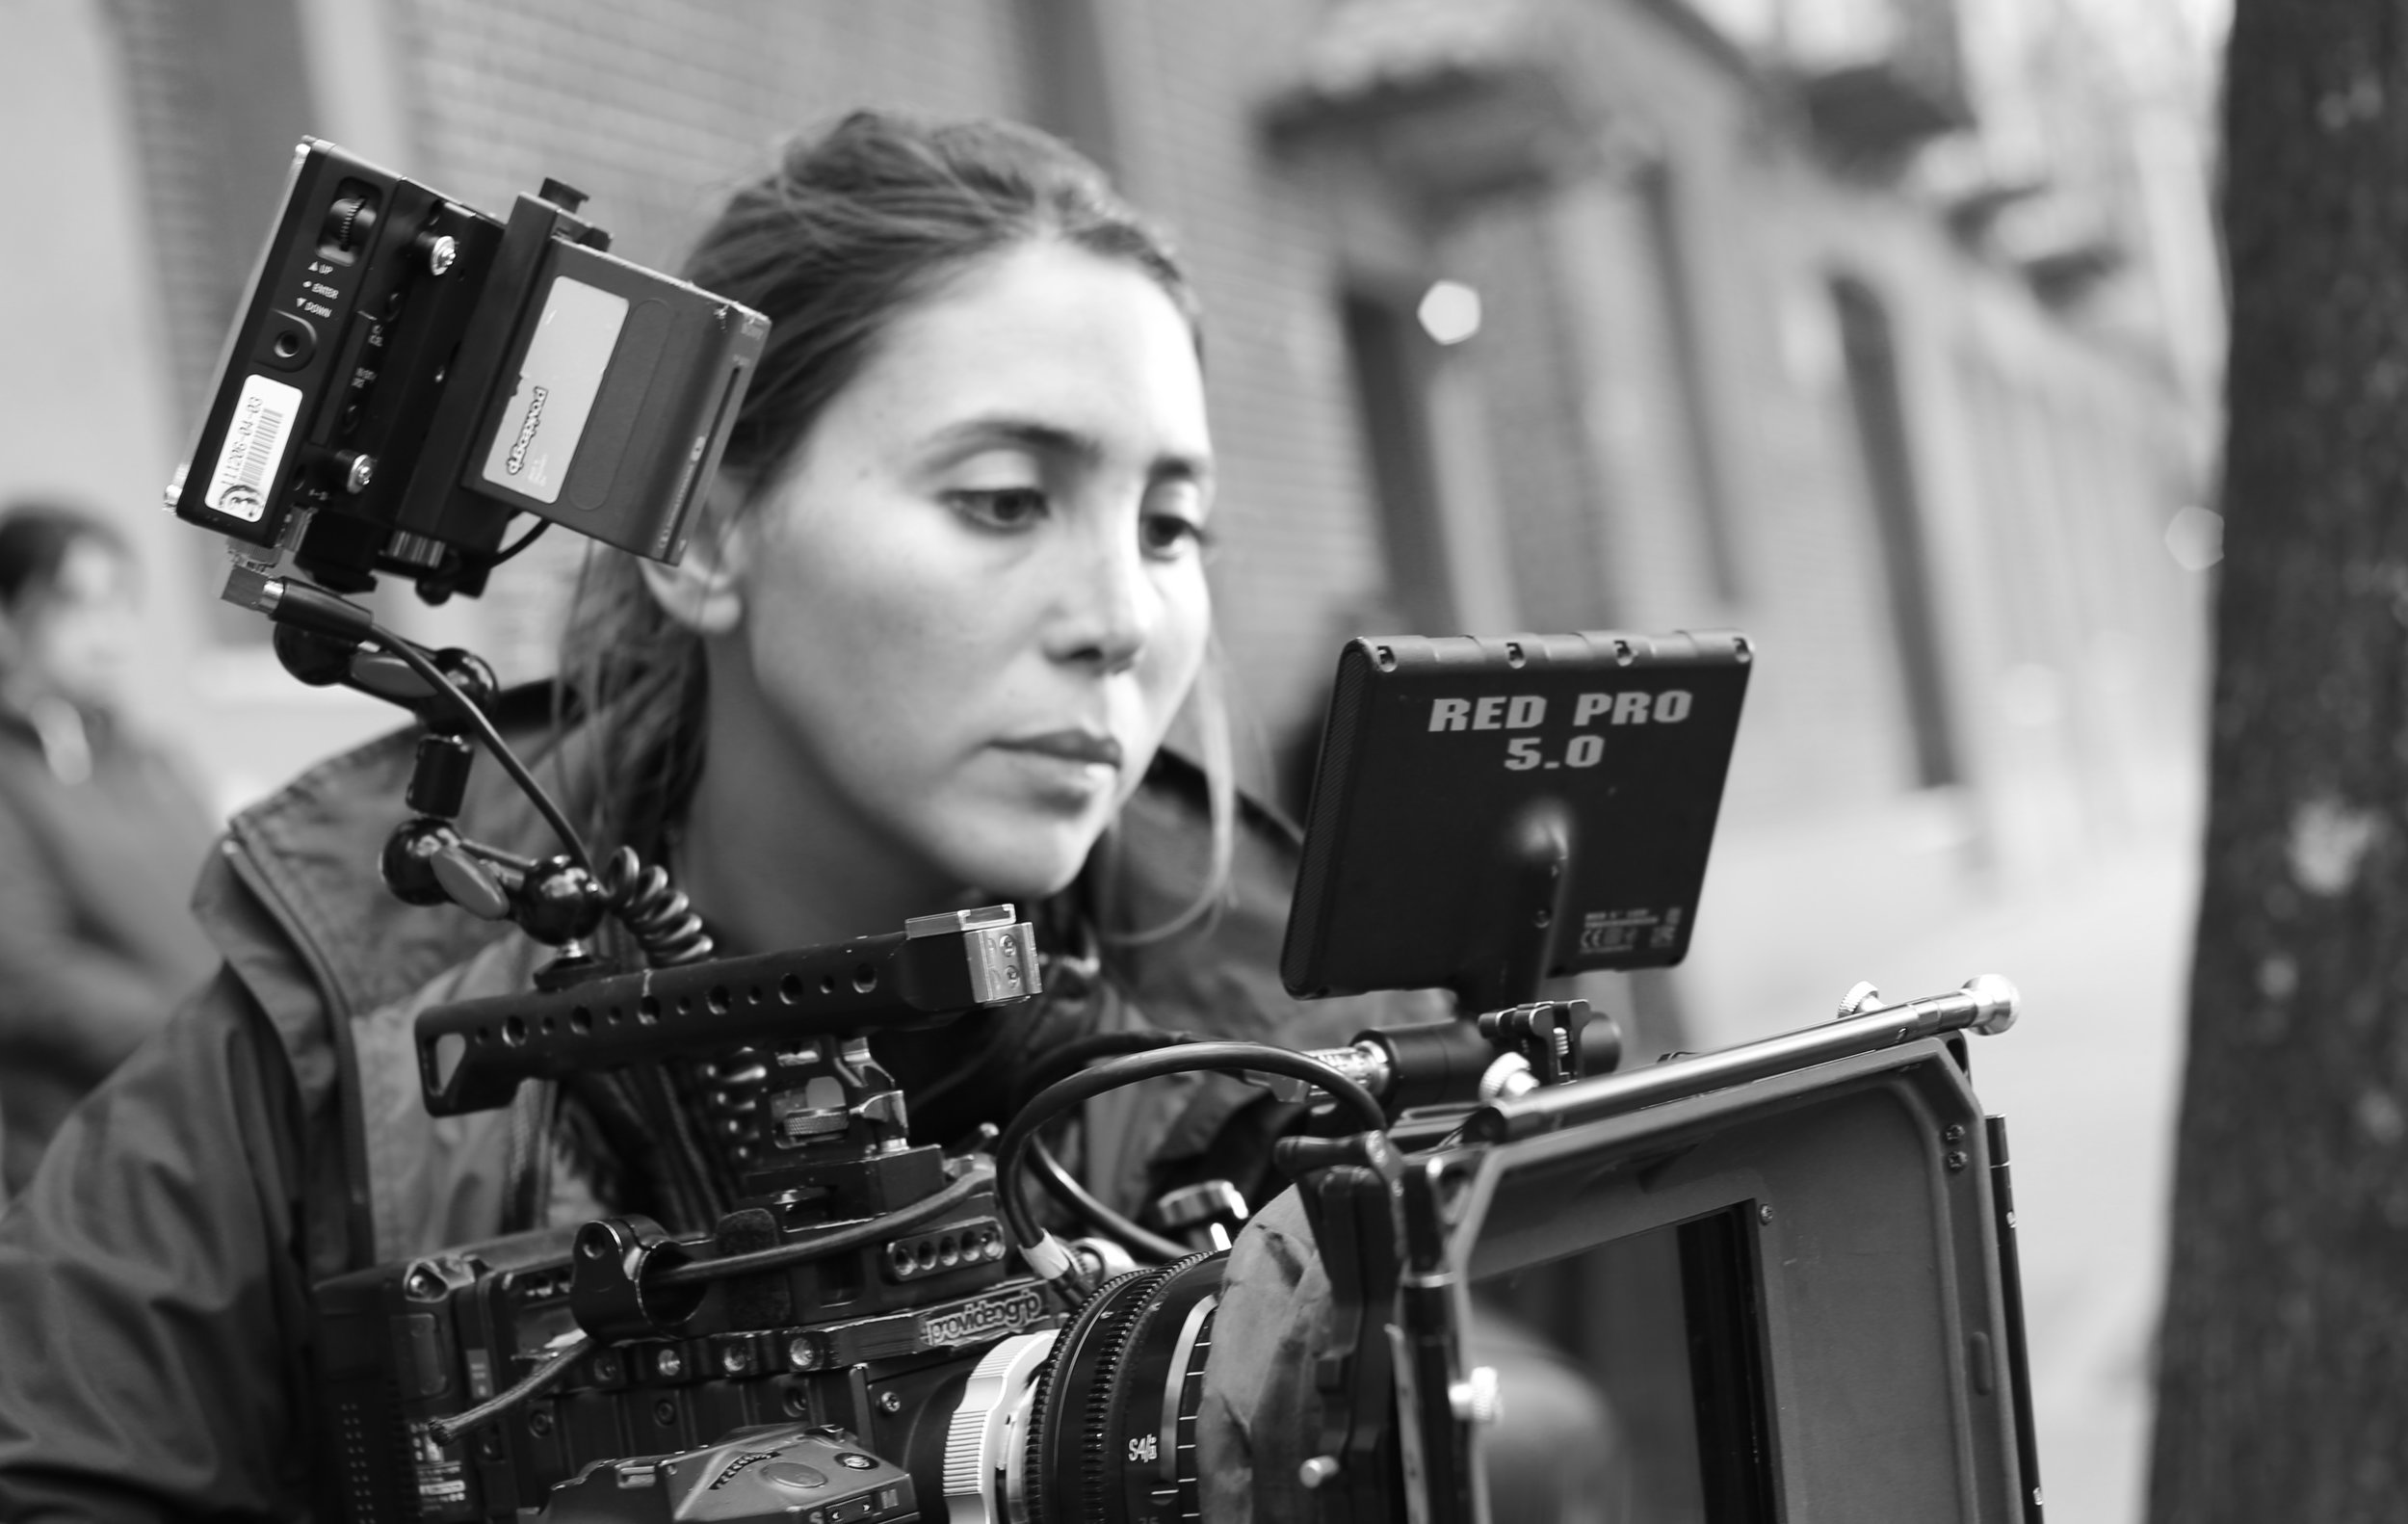 JACKIE TEBOUL - CINEMATOGRAPHERJackie is a French-native cinematographer with an eye for the unusual and a taste for the challenging.Her passion for diversity can be seen in the range of projects she is lensing: from a family drama shot entirely on a fishing boat, to an exploration of the last days of Captain Scott's expedition.Jackie's work covers documentaries as well as fiction and has been recognised by numerous festivals.